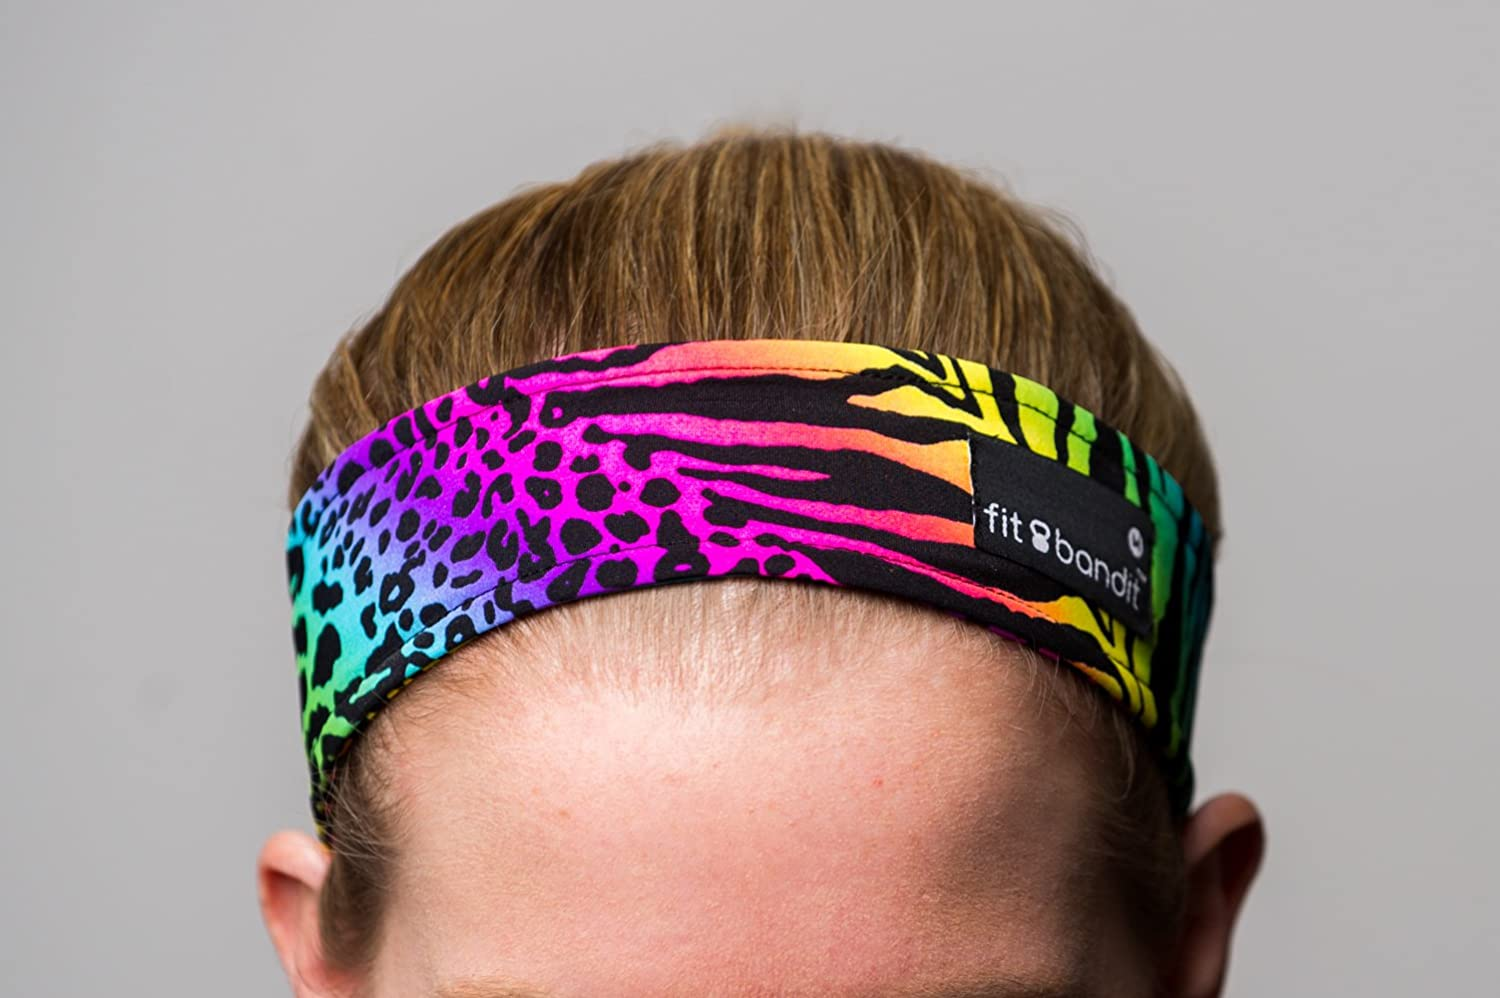 цена на Fit Bandit, No Slip Headband, Multi Color, Animal Magnetism *Patent Pending, Made in the USA